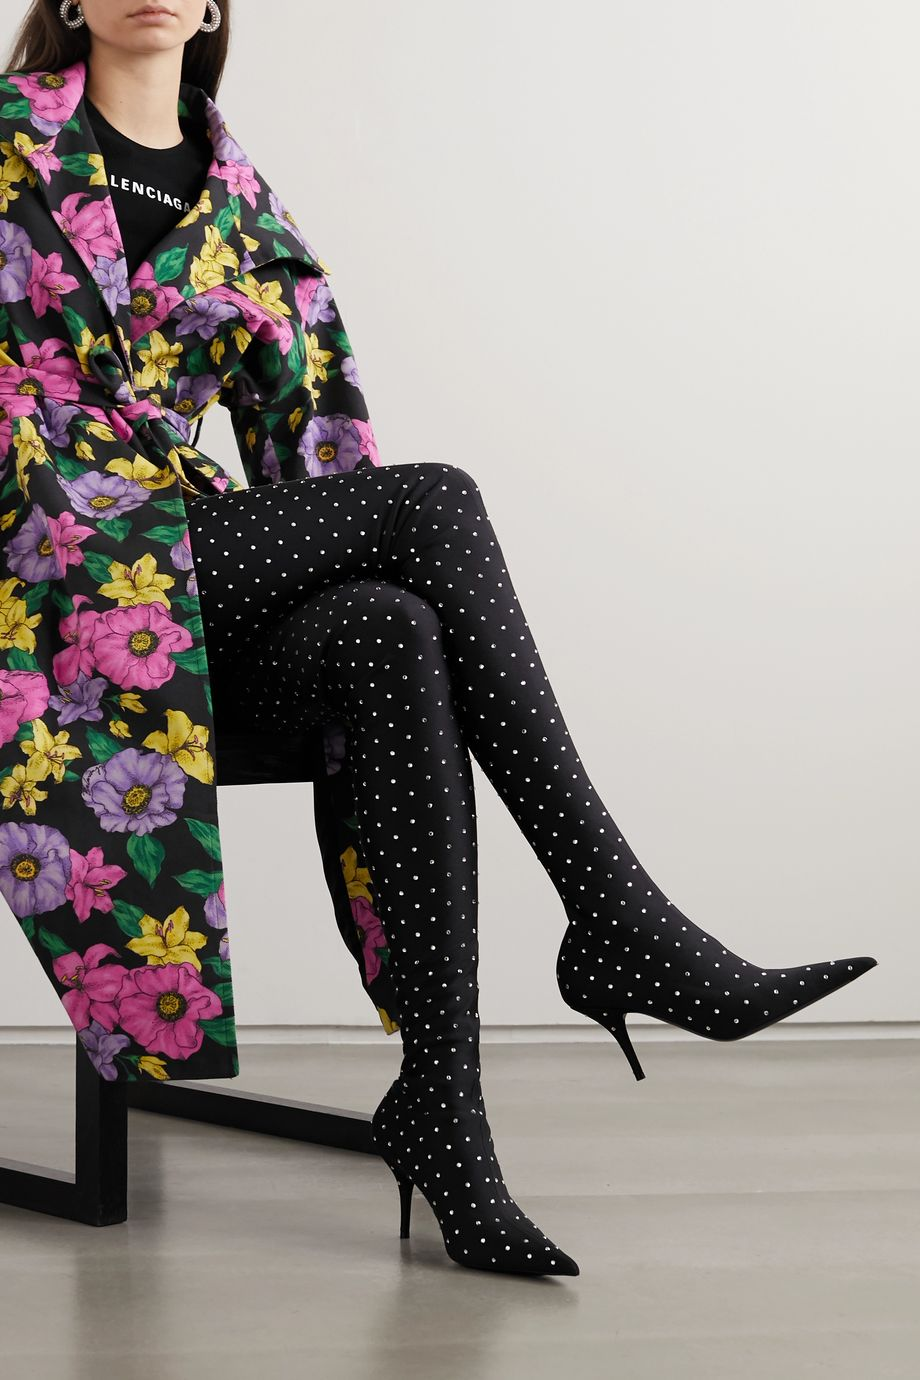 Balenciaga Knife crystal-embellished stretch-satin thigh boots